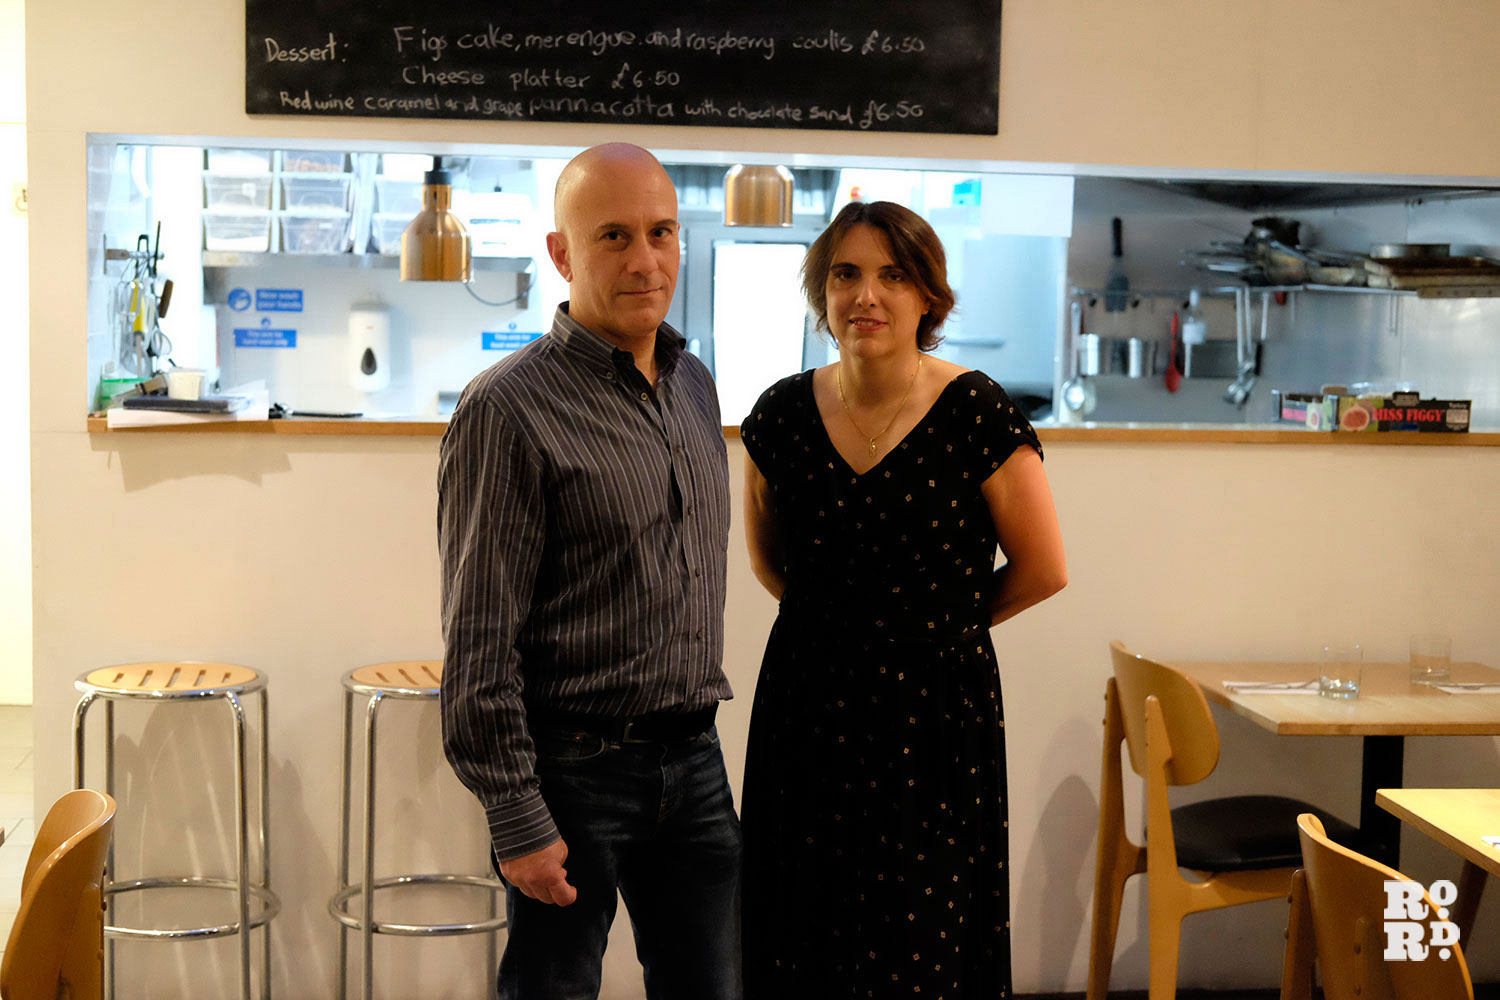 A man and a woman stand in front of the kitchen inside a restaurant